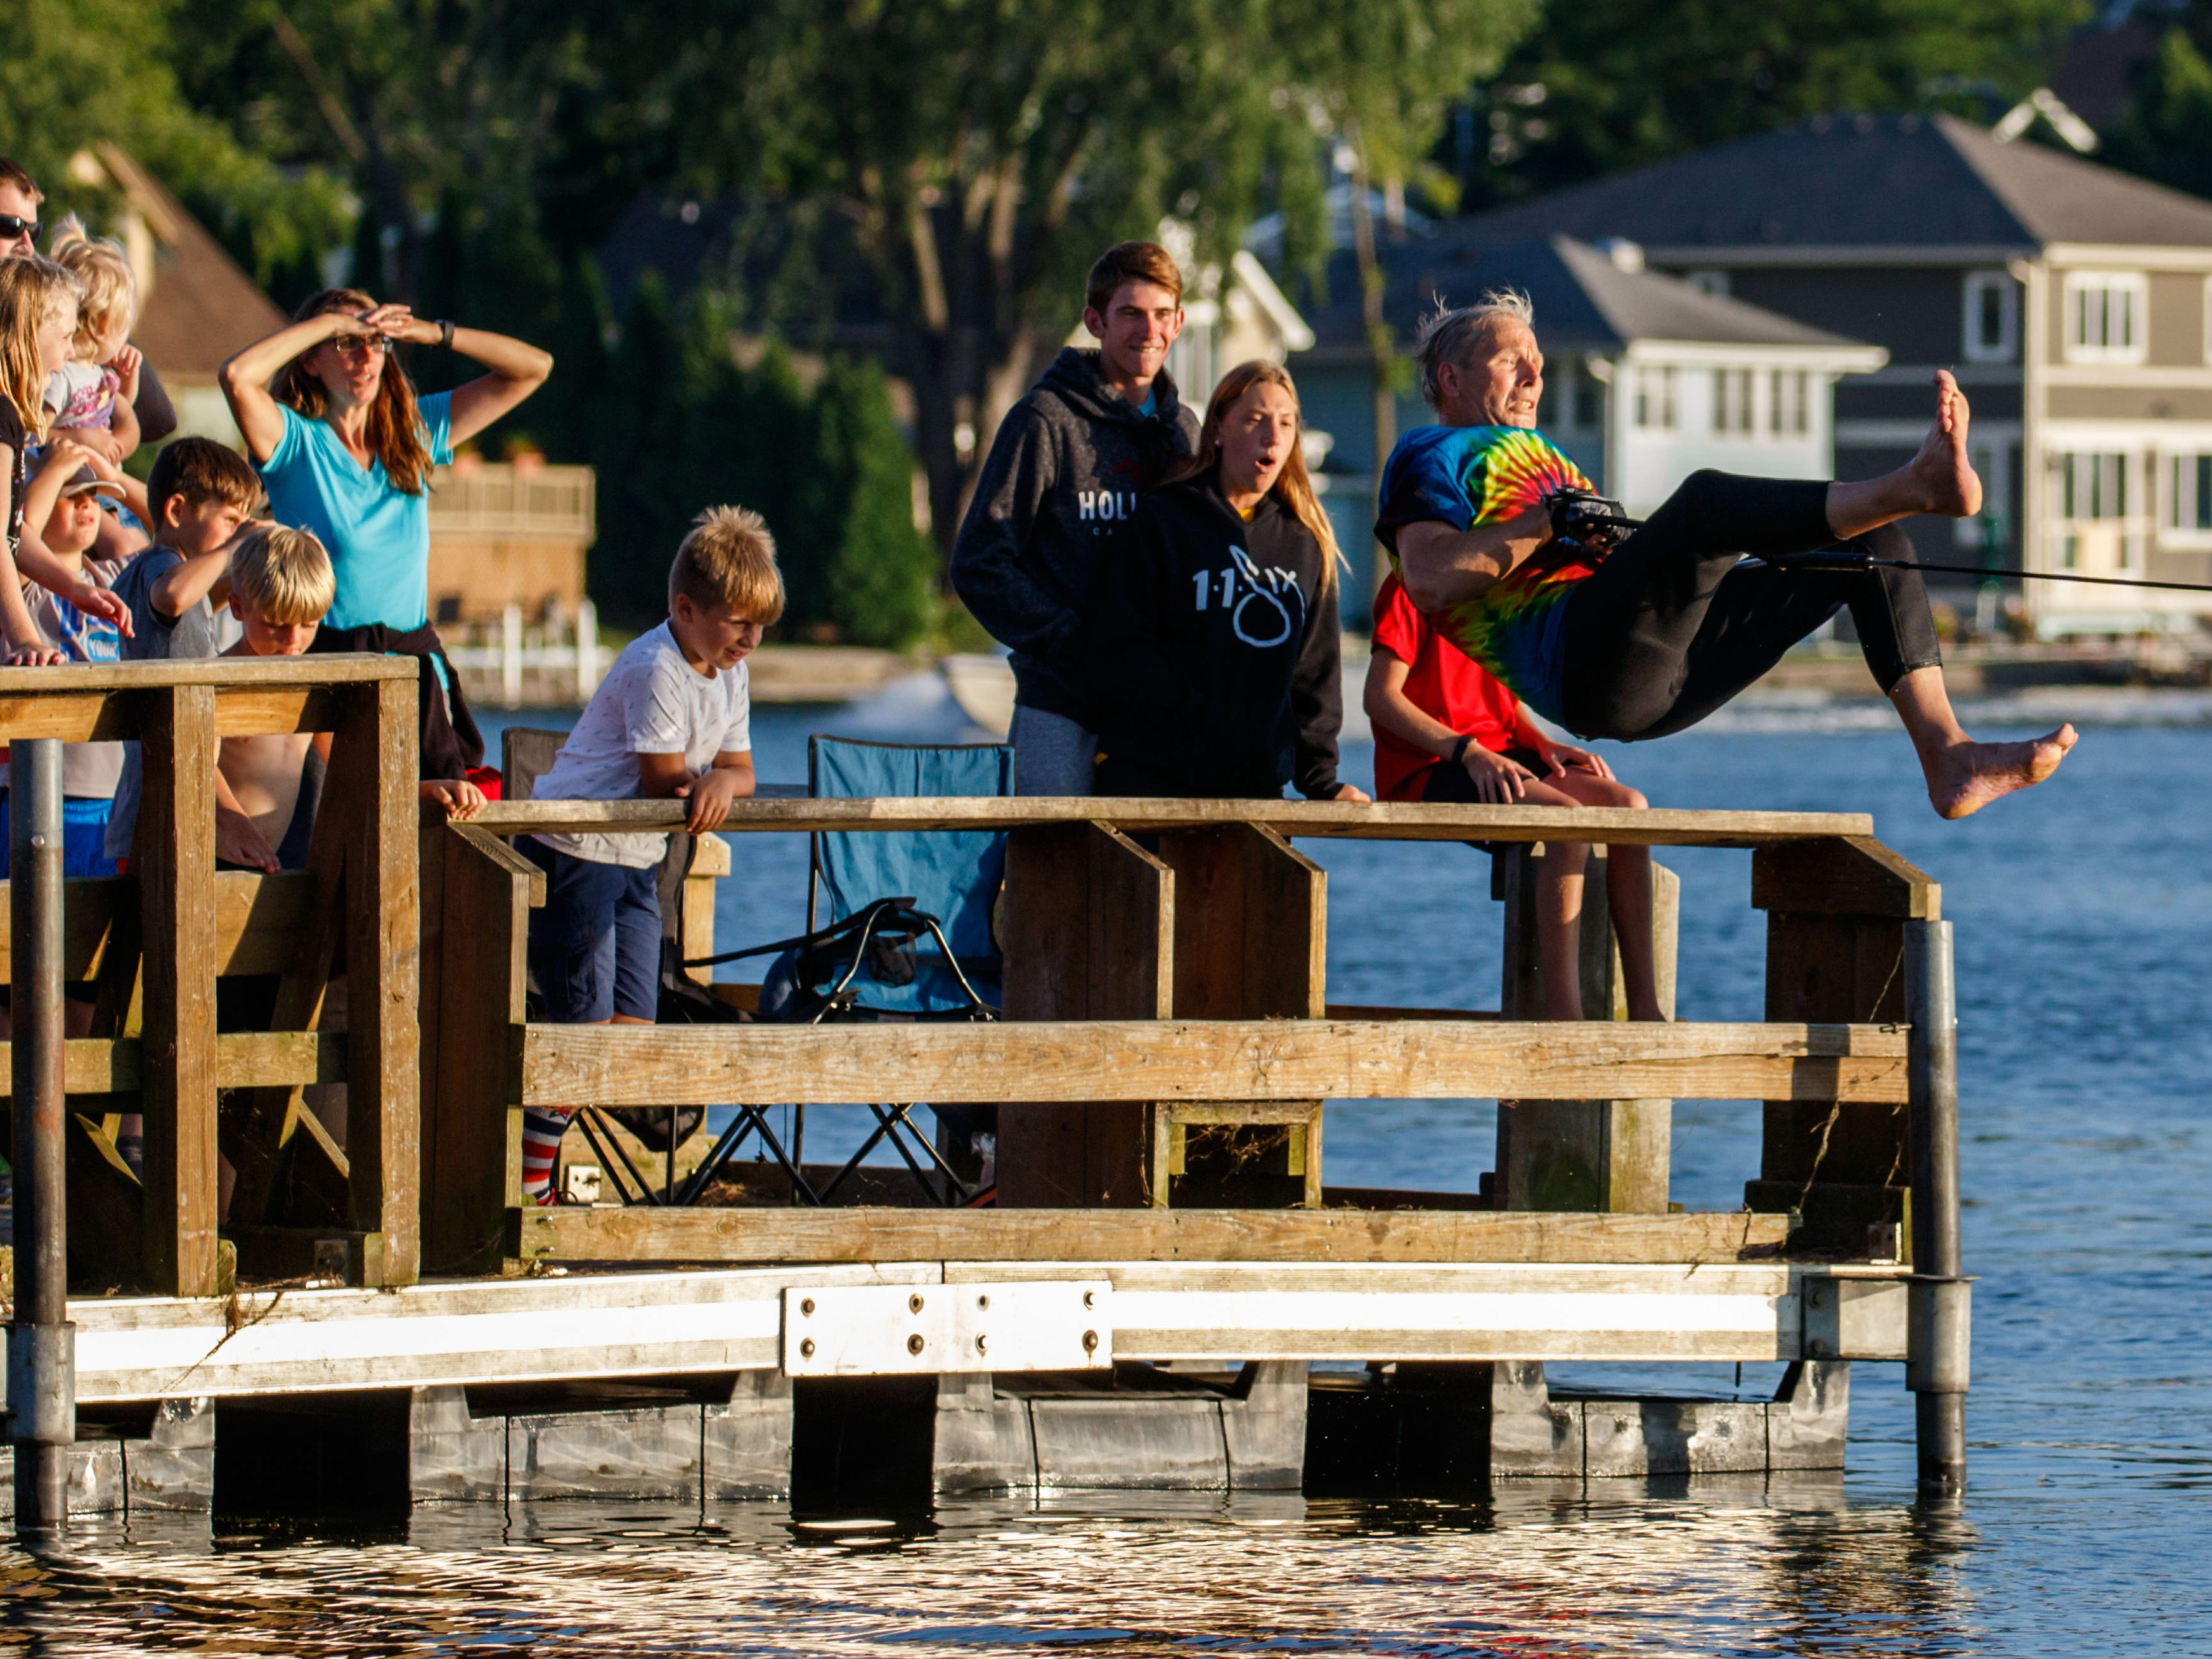 Barefoot skier Mike Rotar of Pewaukee amazes spectators as he launches off the community pier during the Pewaukee Lake Water Ski Club's weekly show at Lakefront Park on Thursday, August 2, 2018.